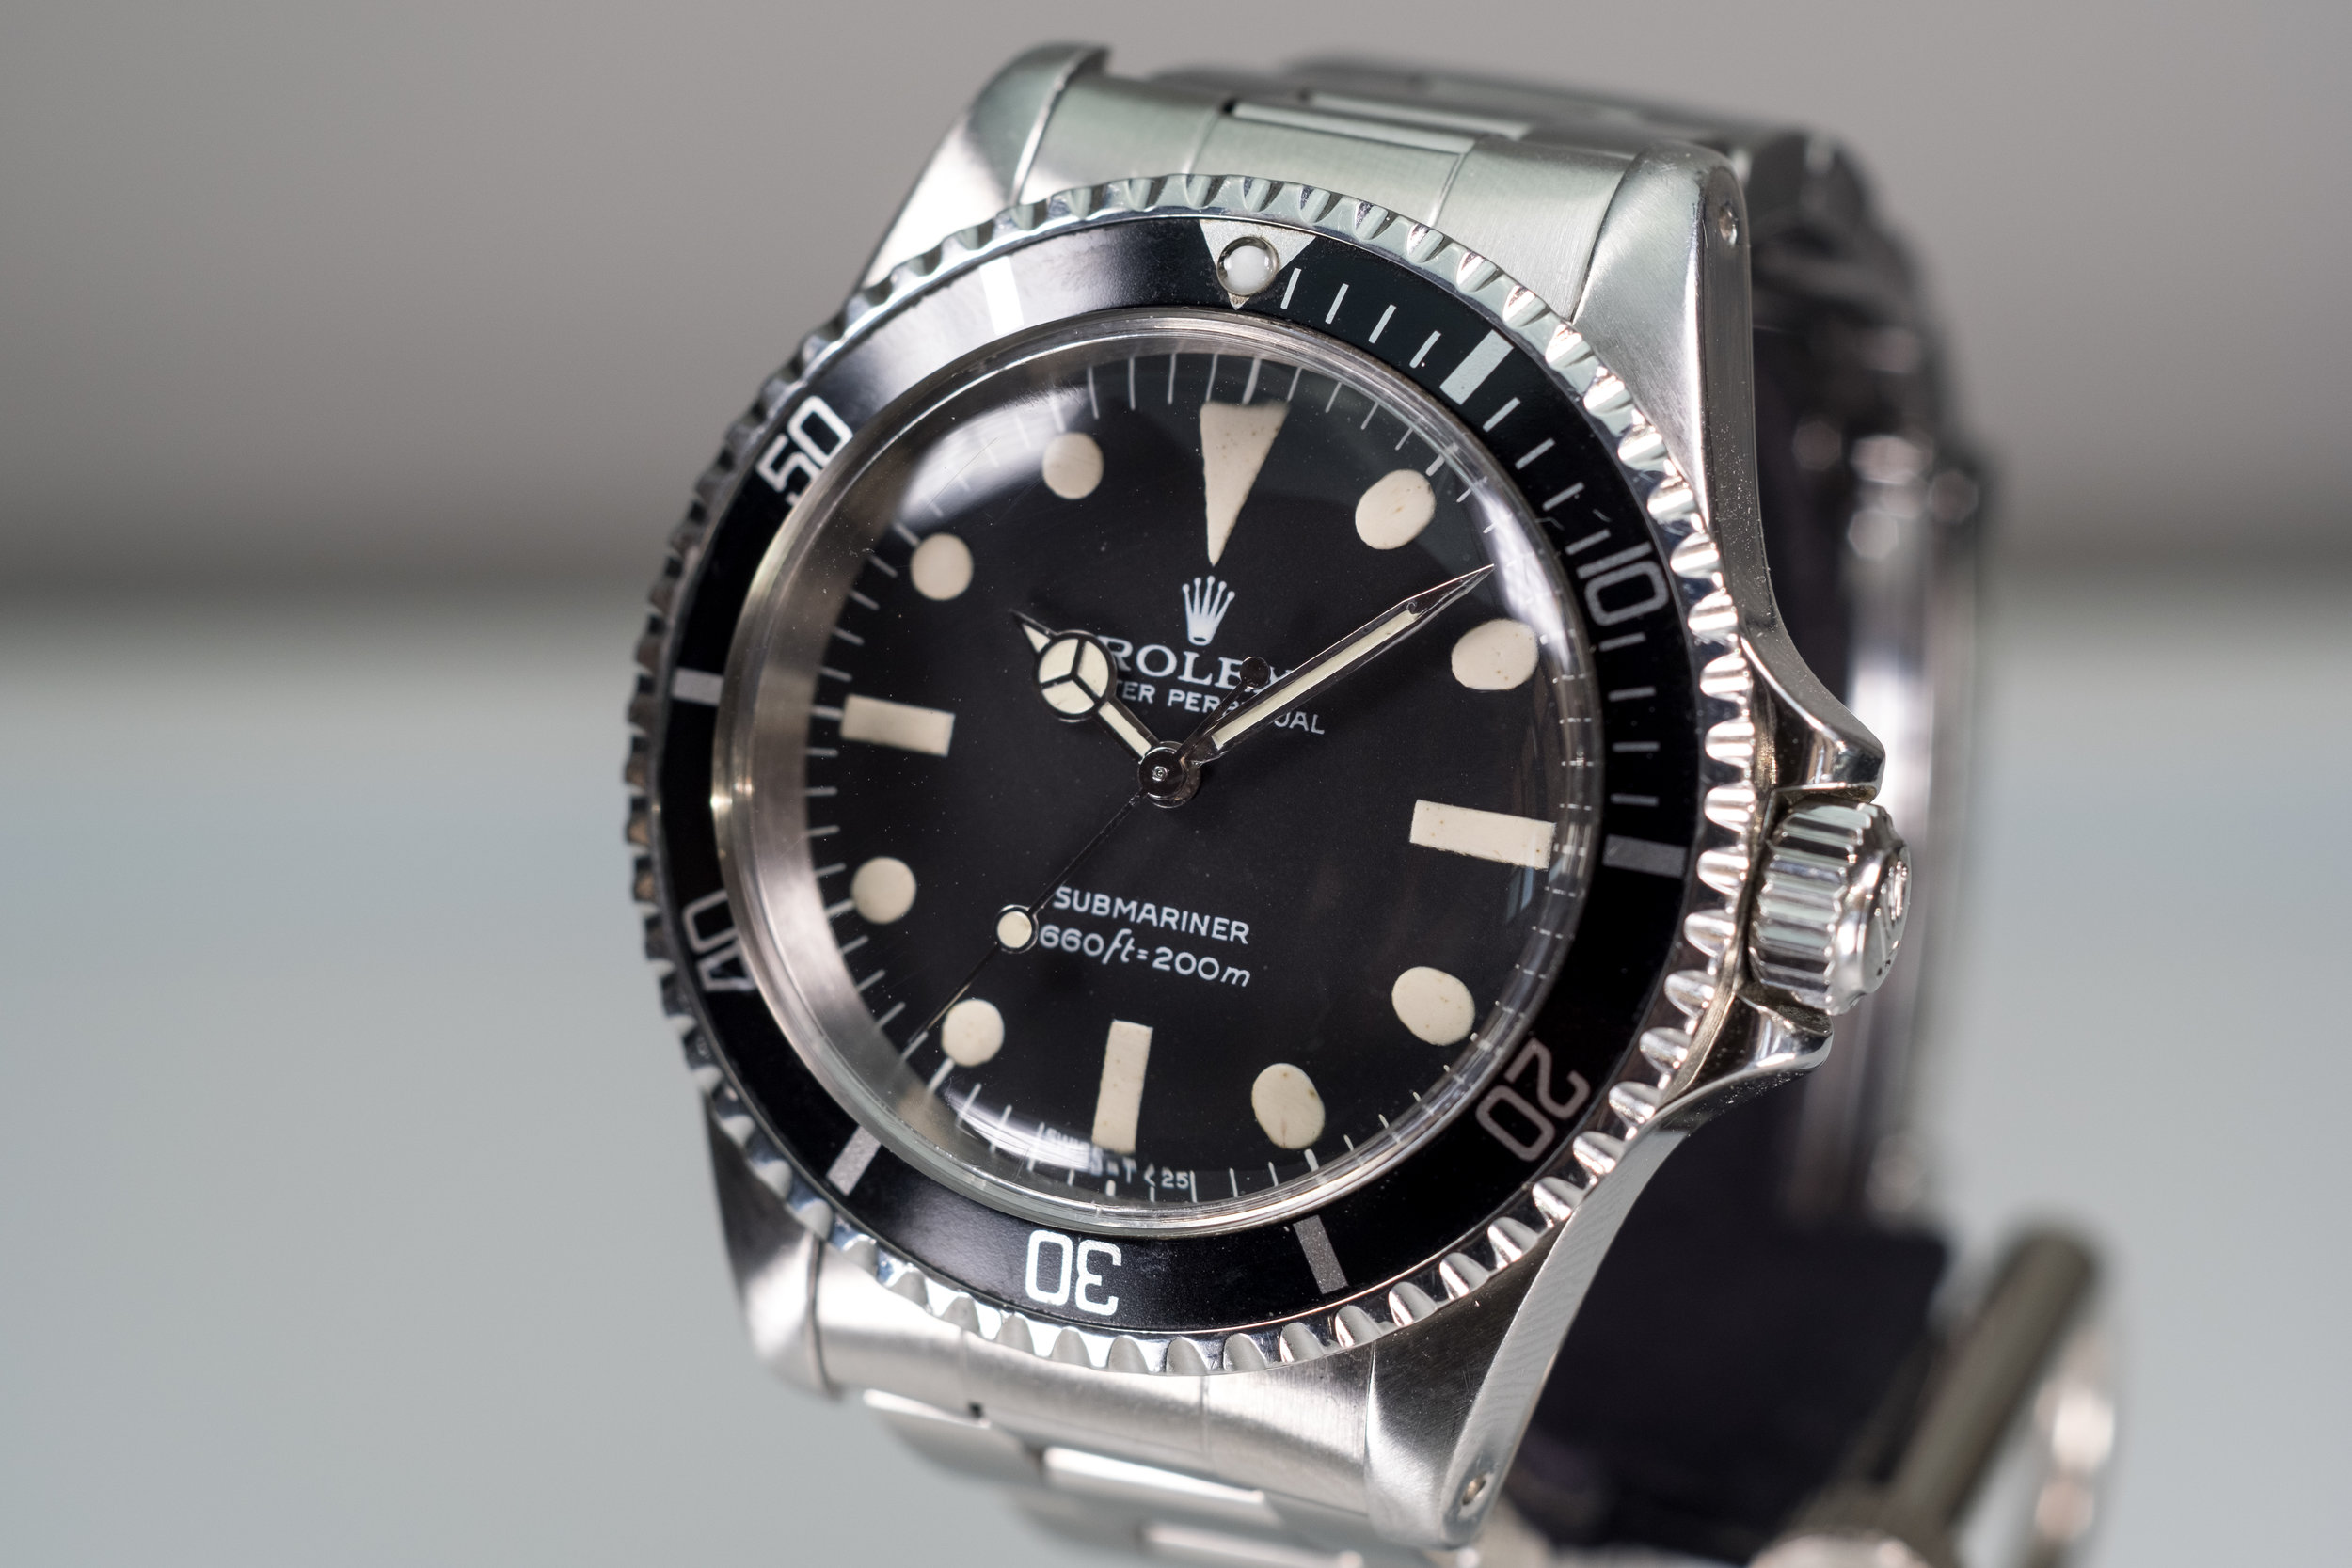 yacht steel you all pin it with now t get wrong platinum submariner ii master rolex got can